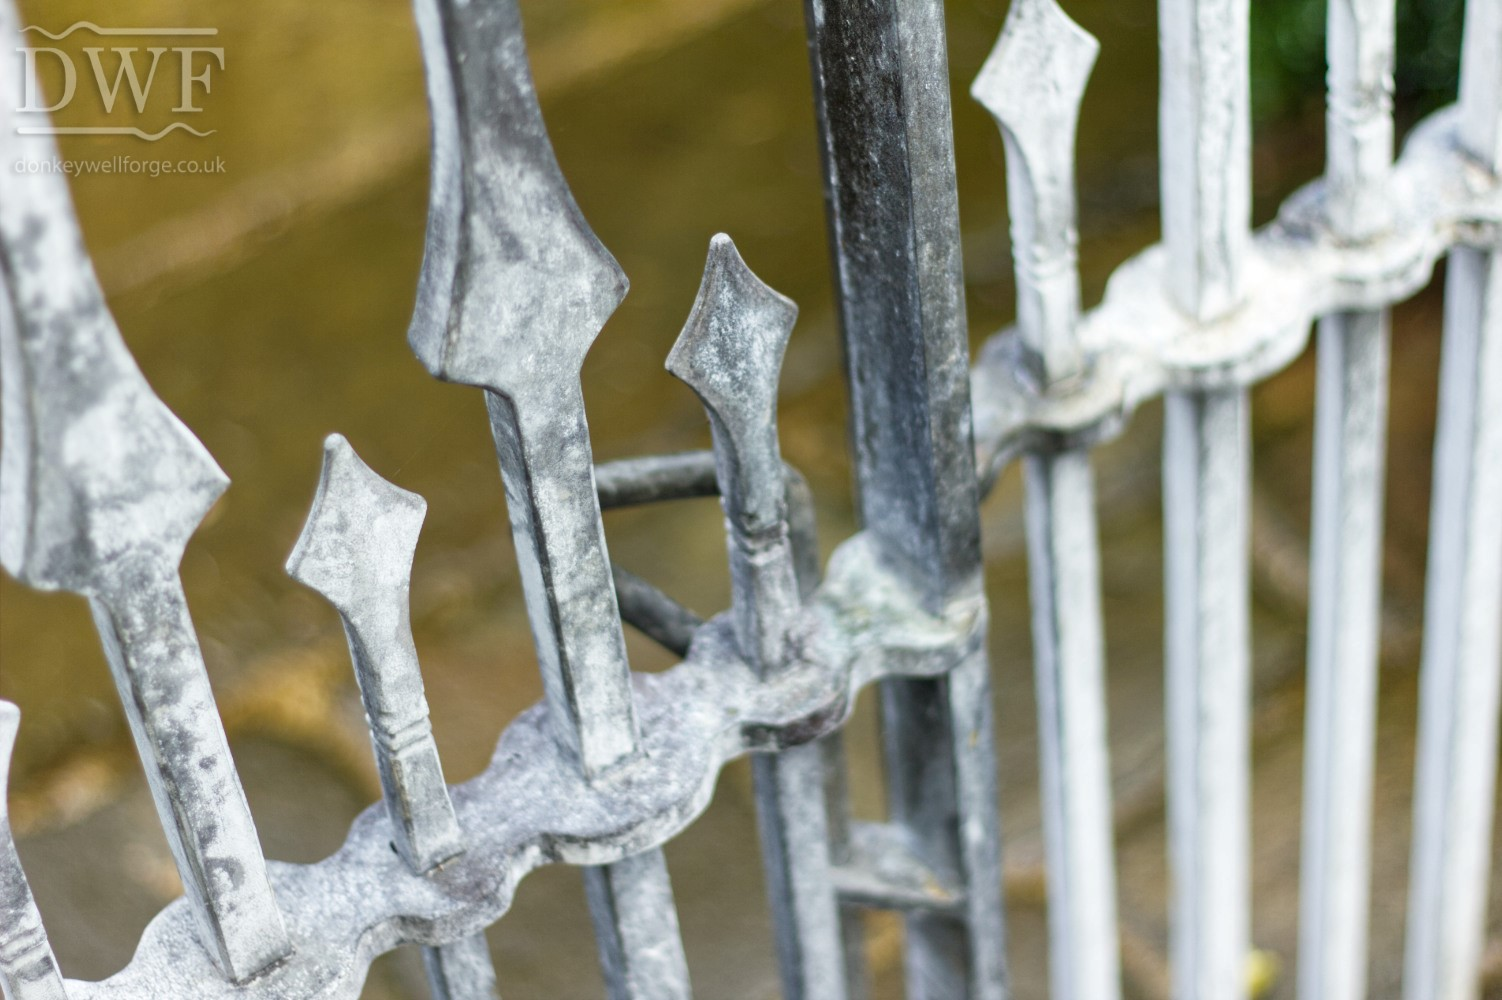 gothic-garden-railings-gates-traditional-ironwork-detail-finials-forged-swellings